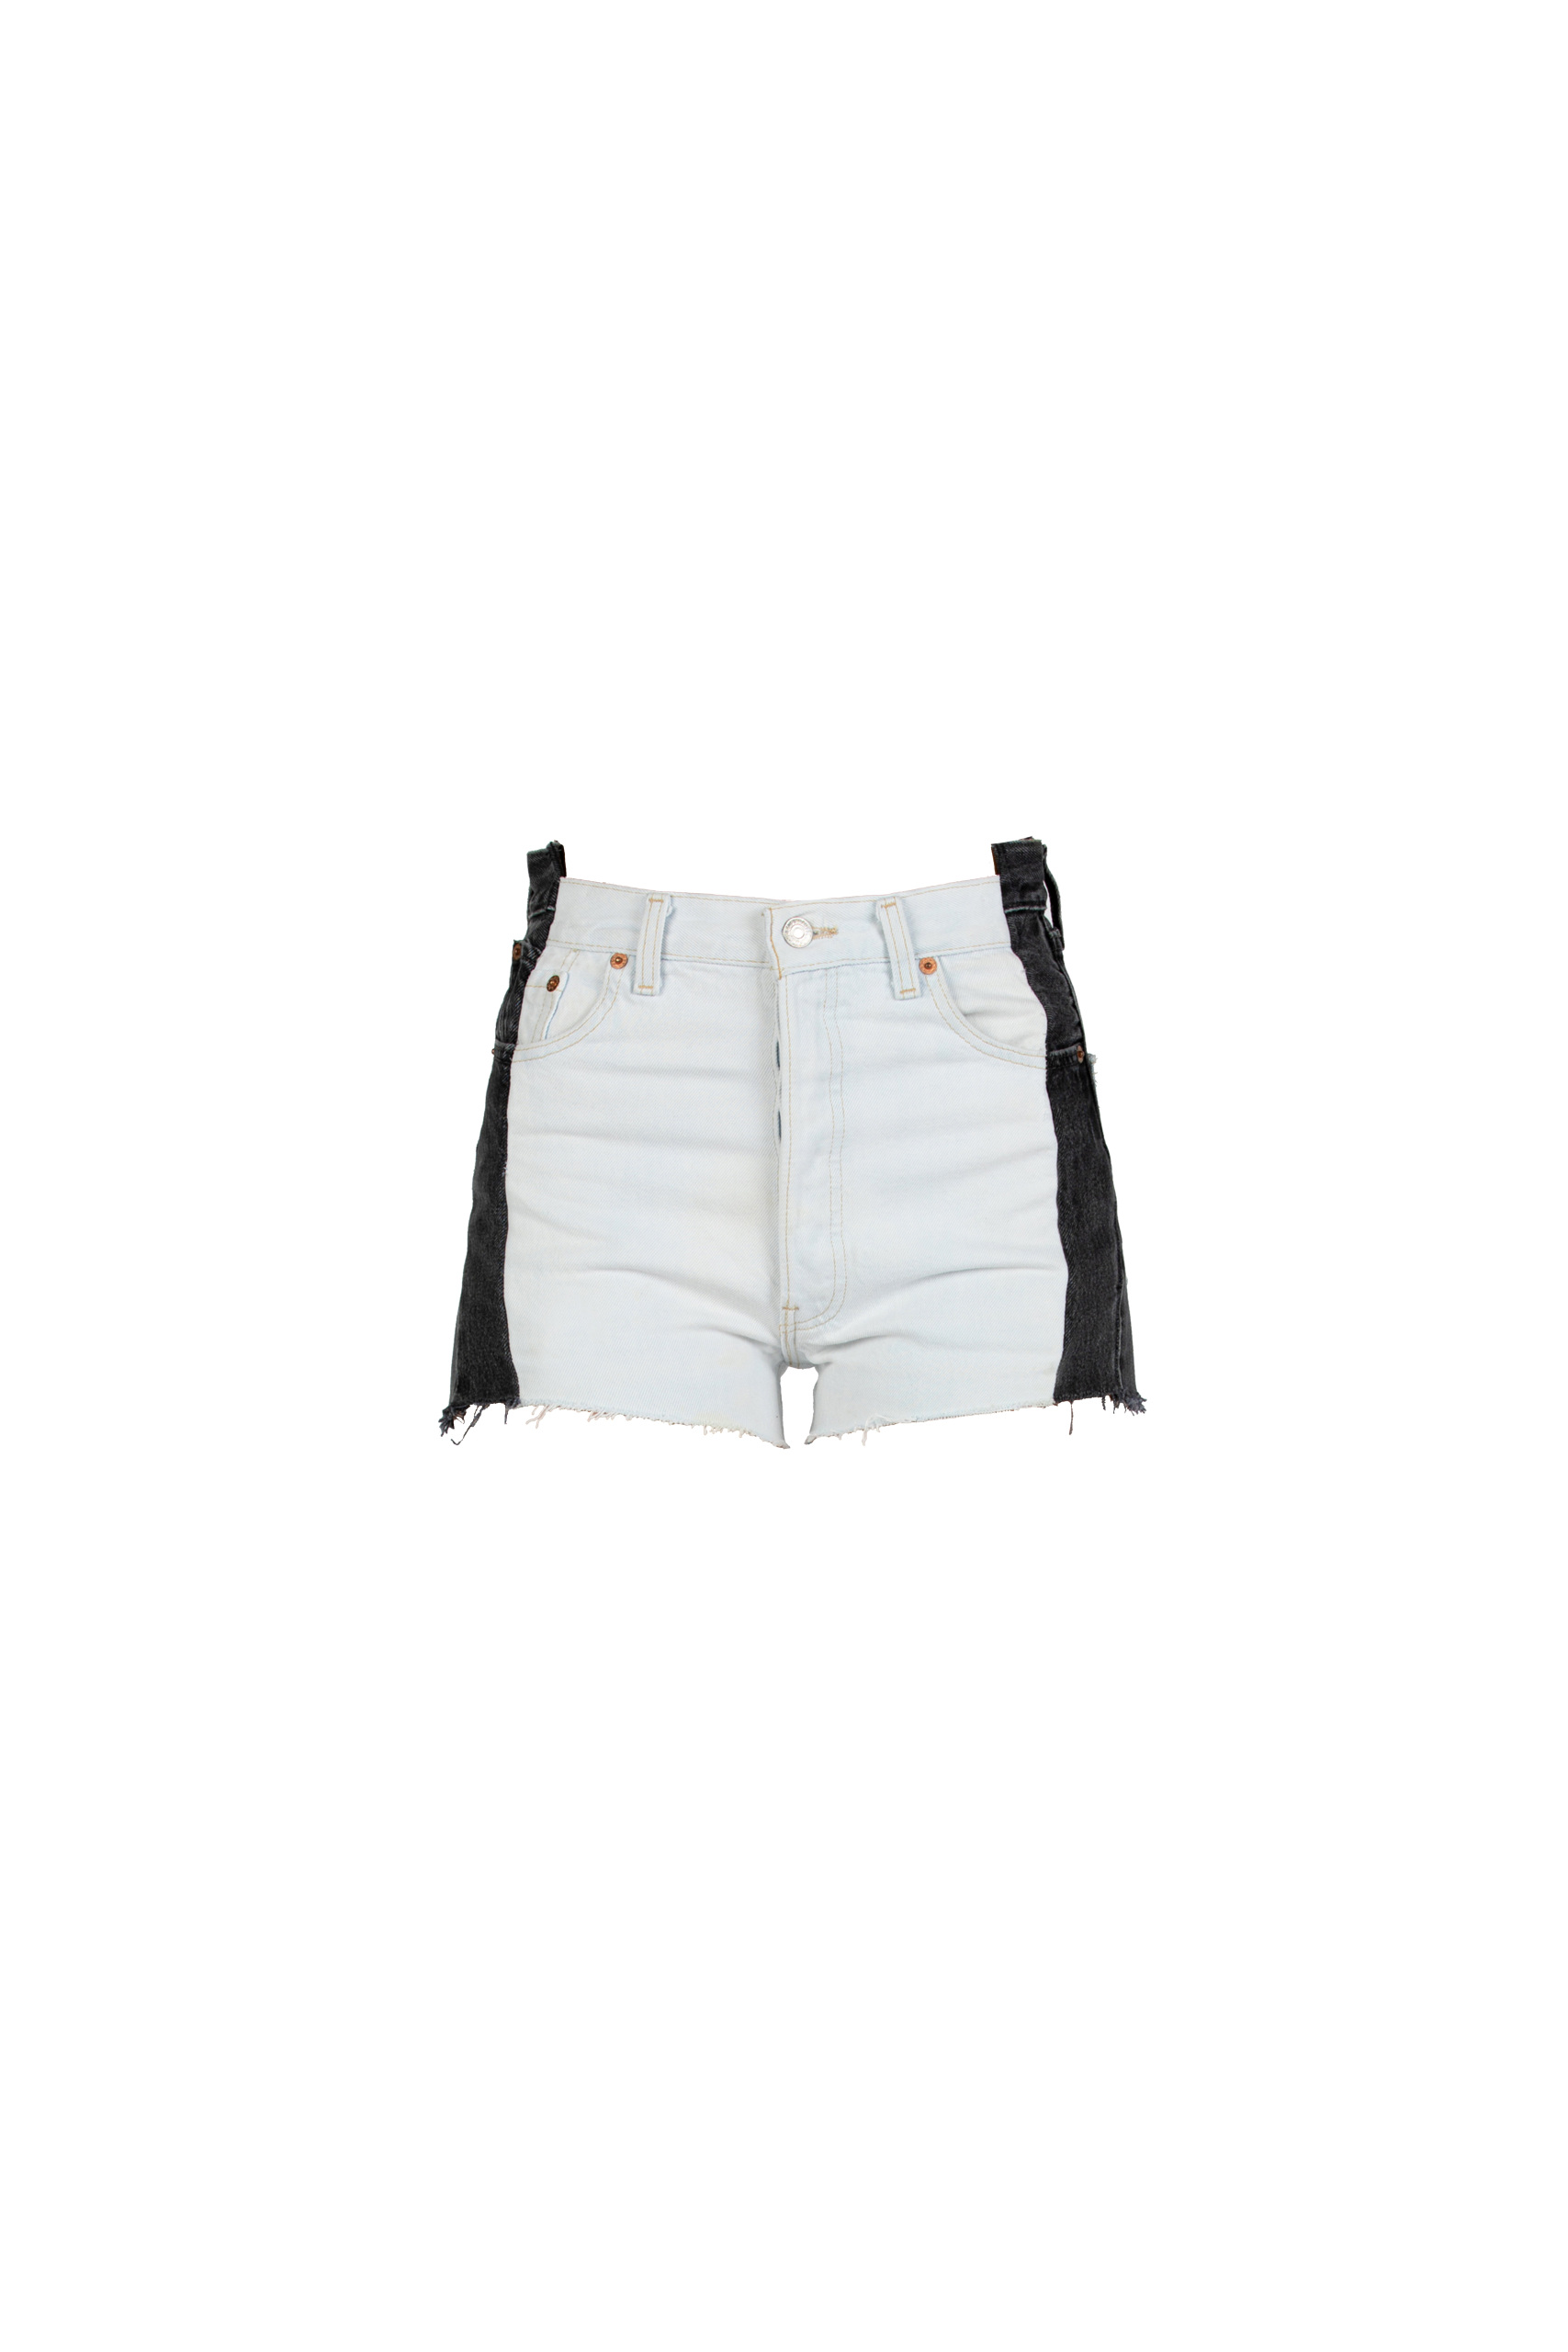 Black & White Shorts by EB Denim, available on ebdenim.com for $243 Hailey Baldwin Shorts SIMILAR PRODUCT